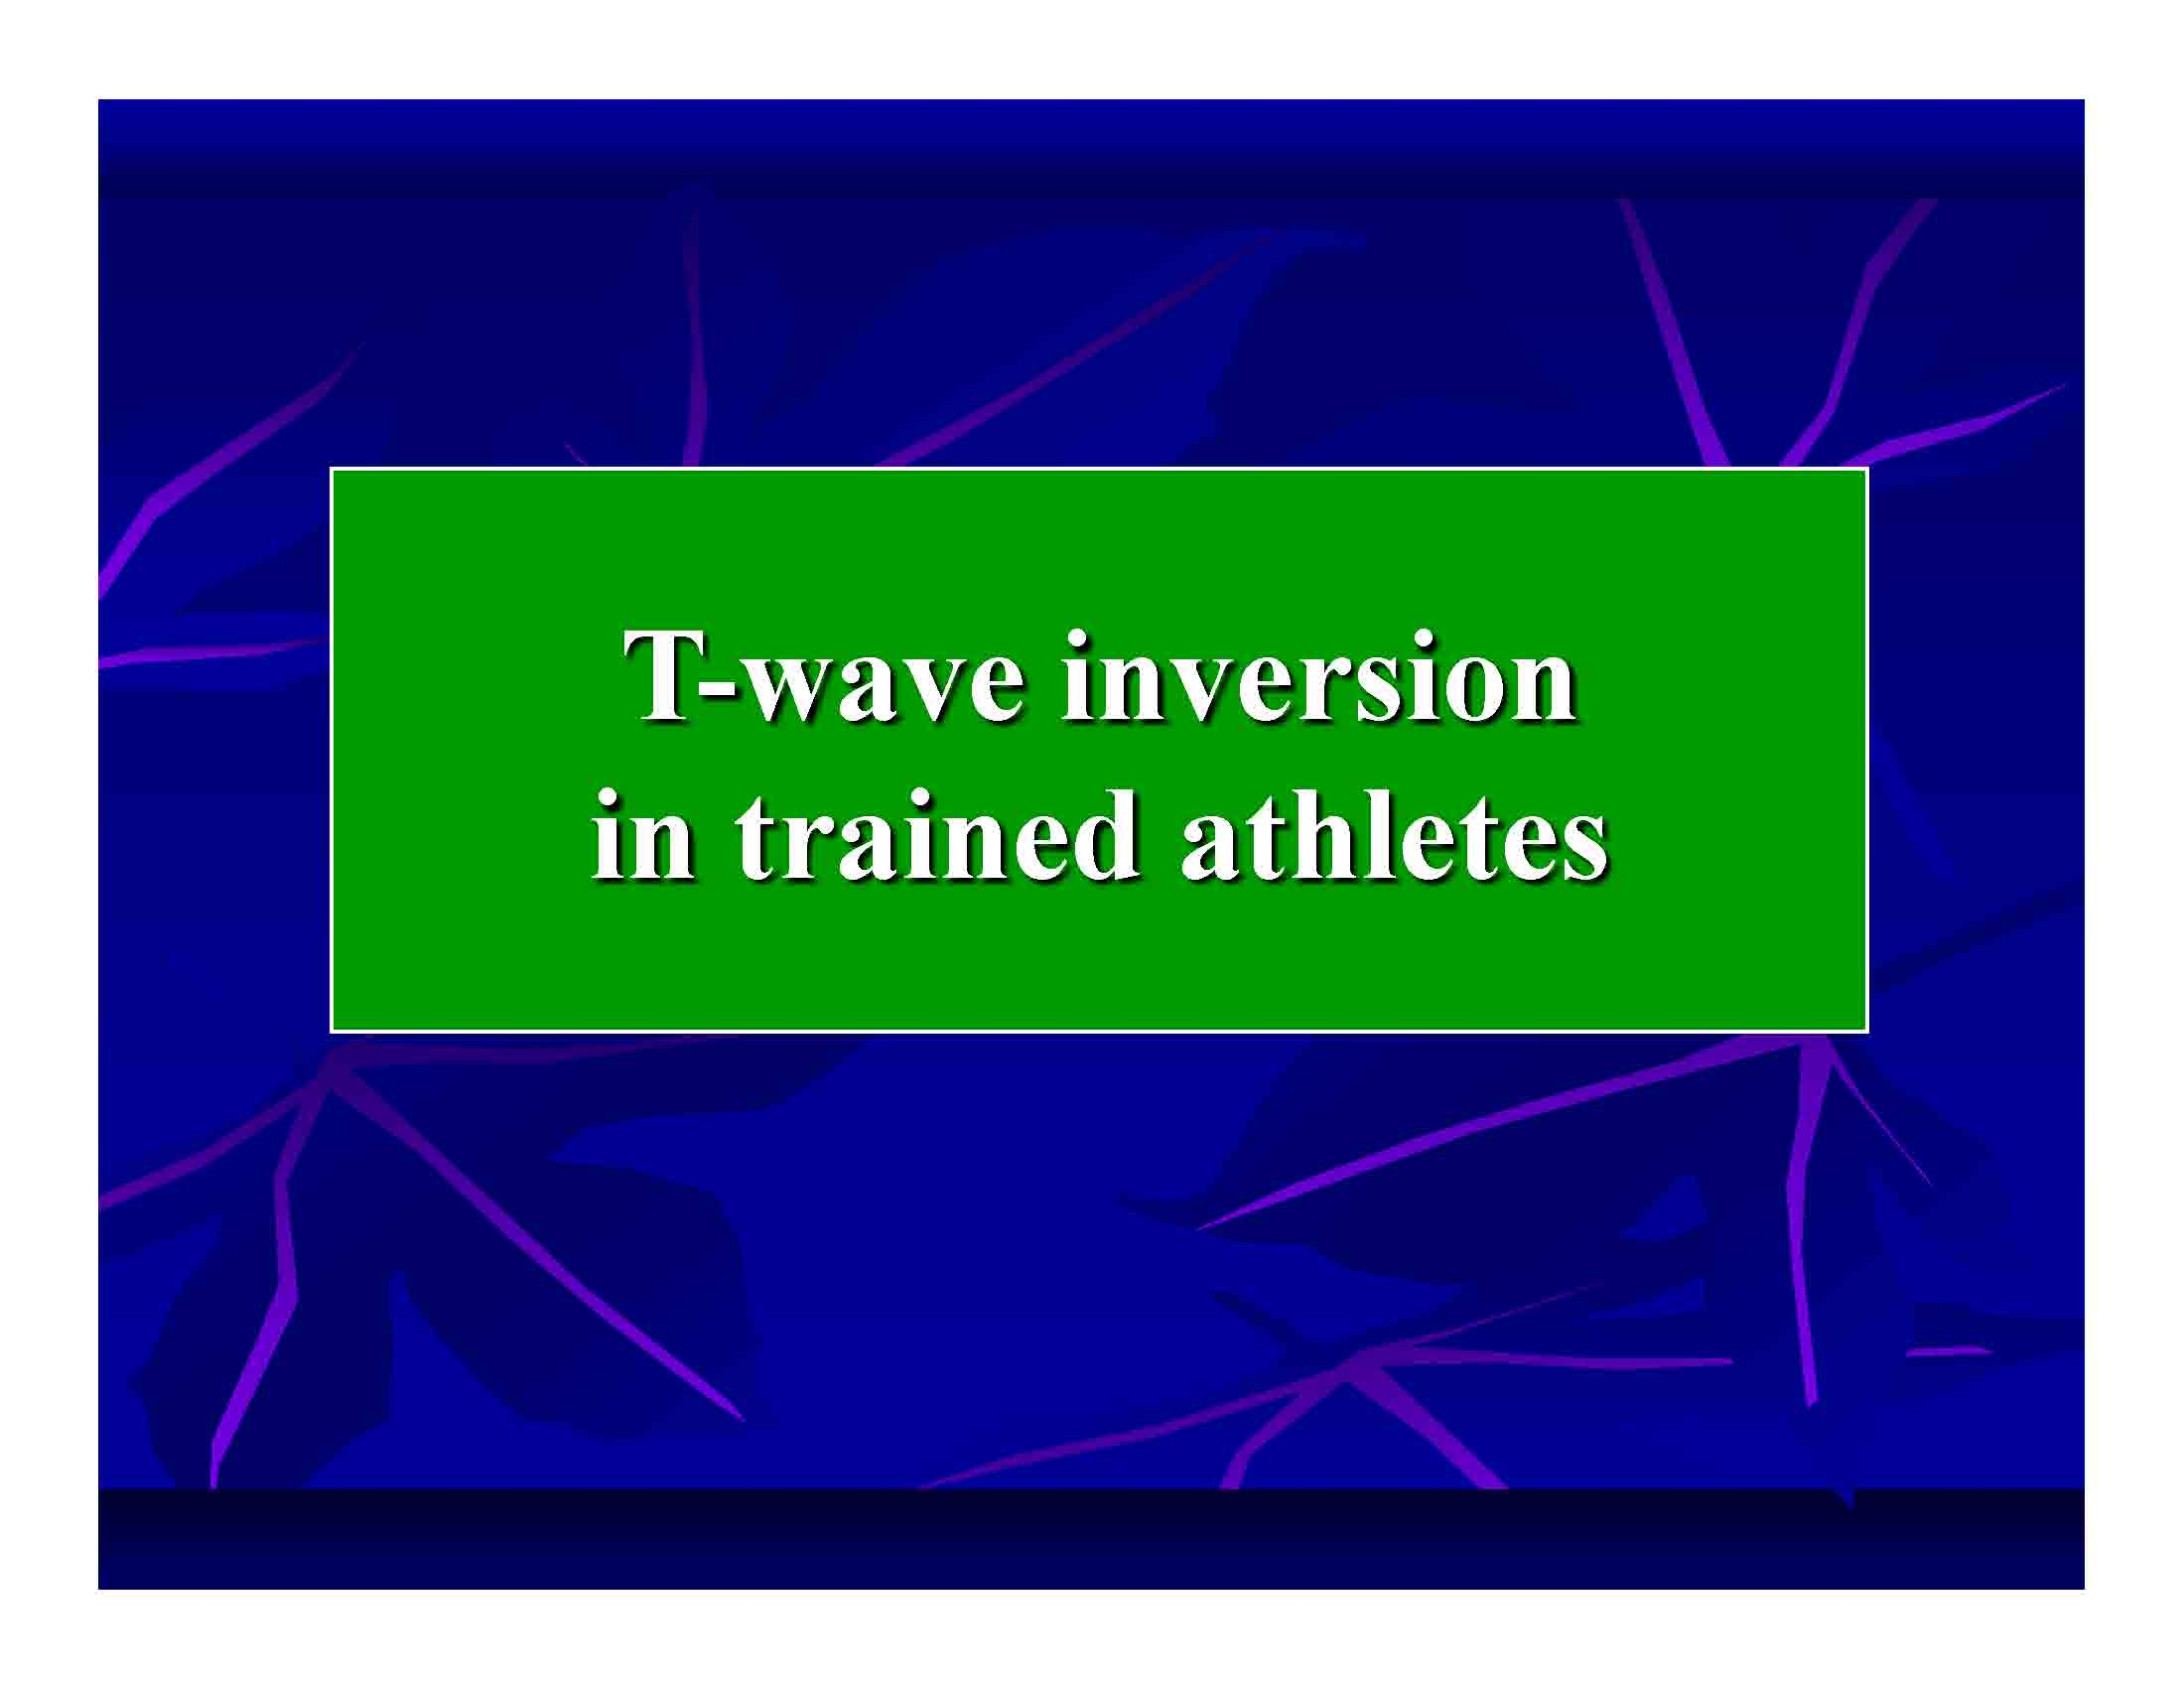 T-wave inversion in trained athletes